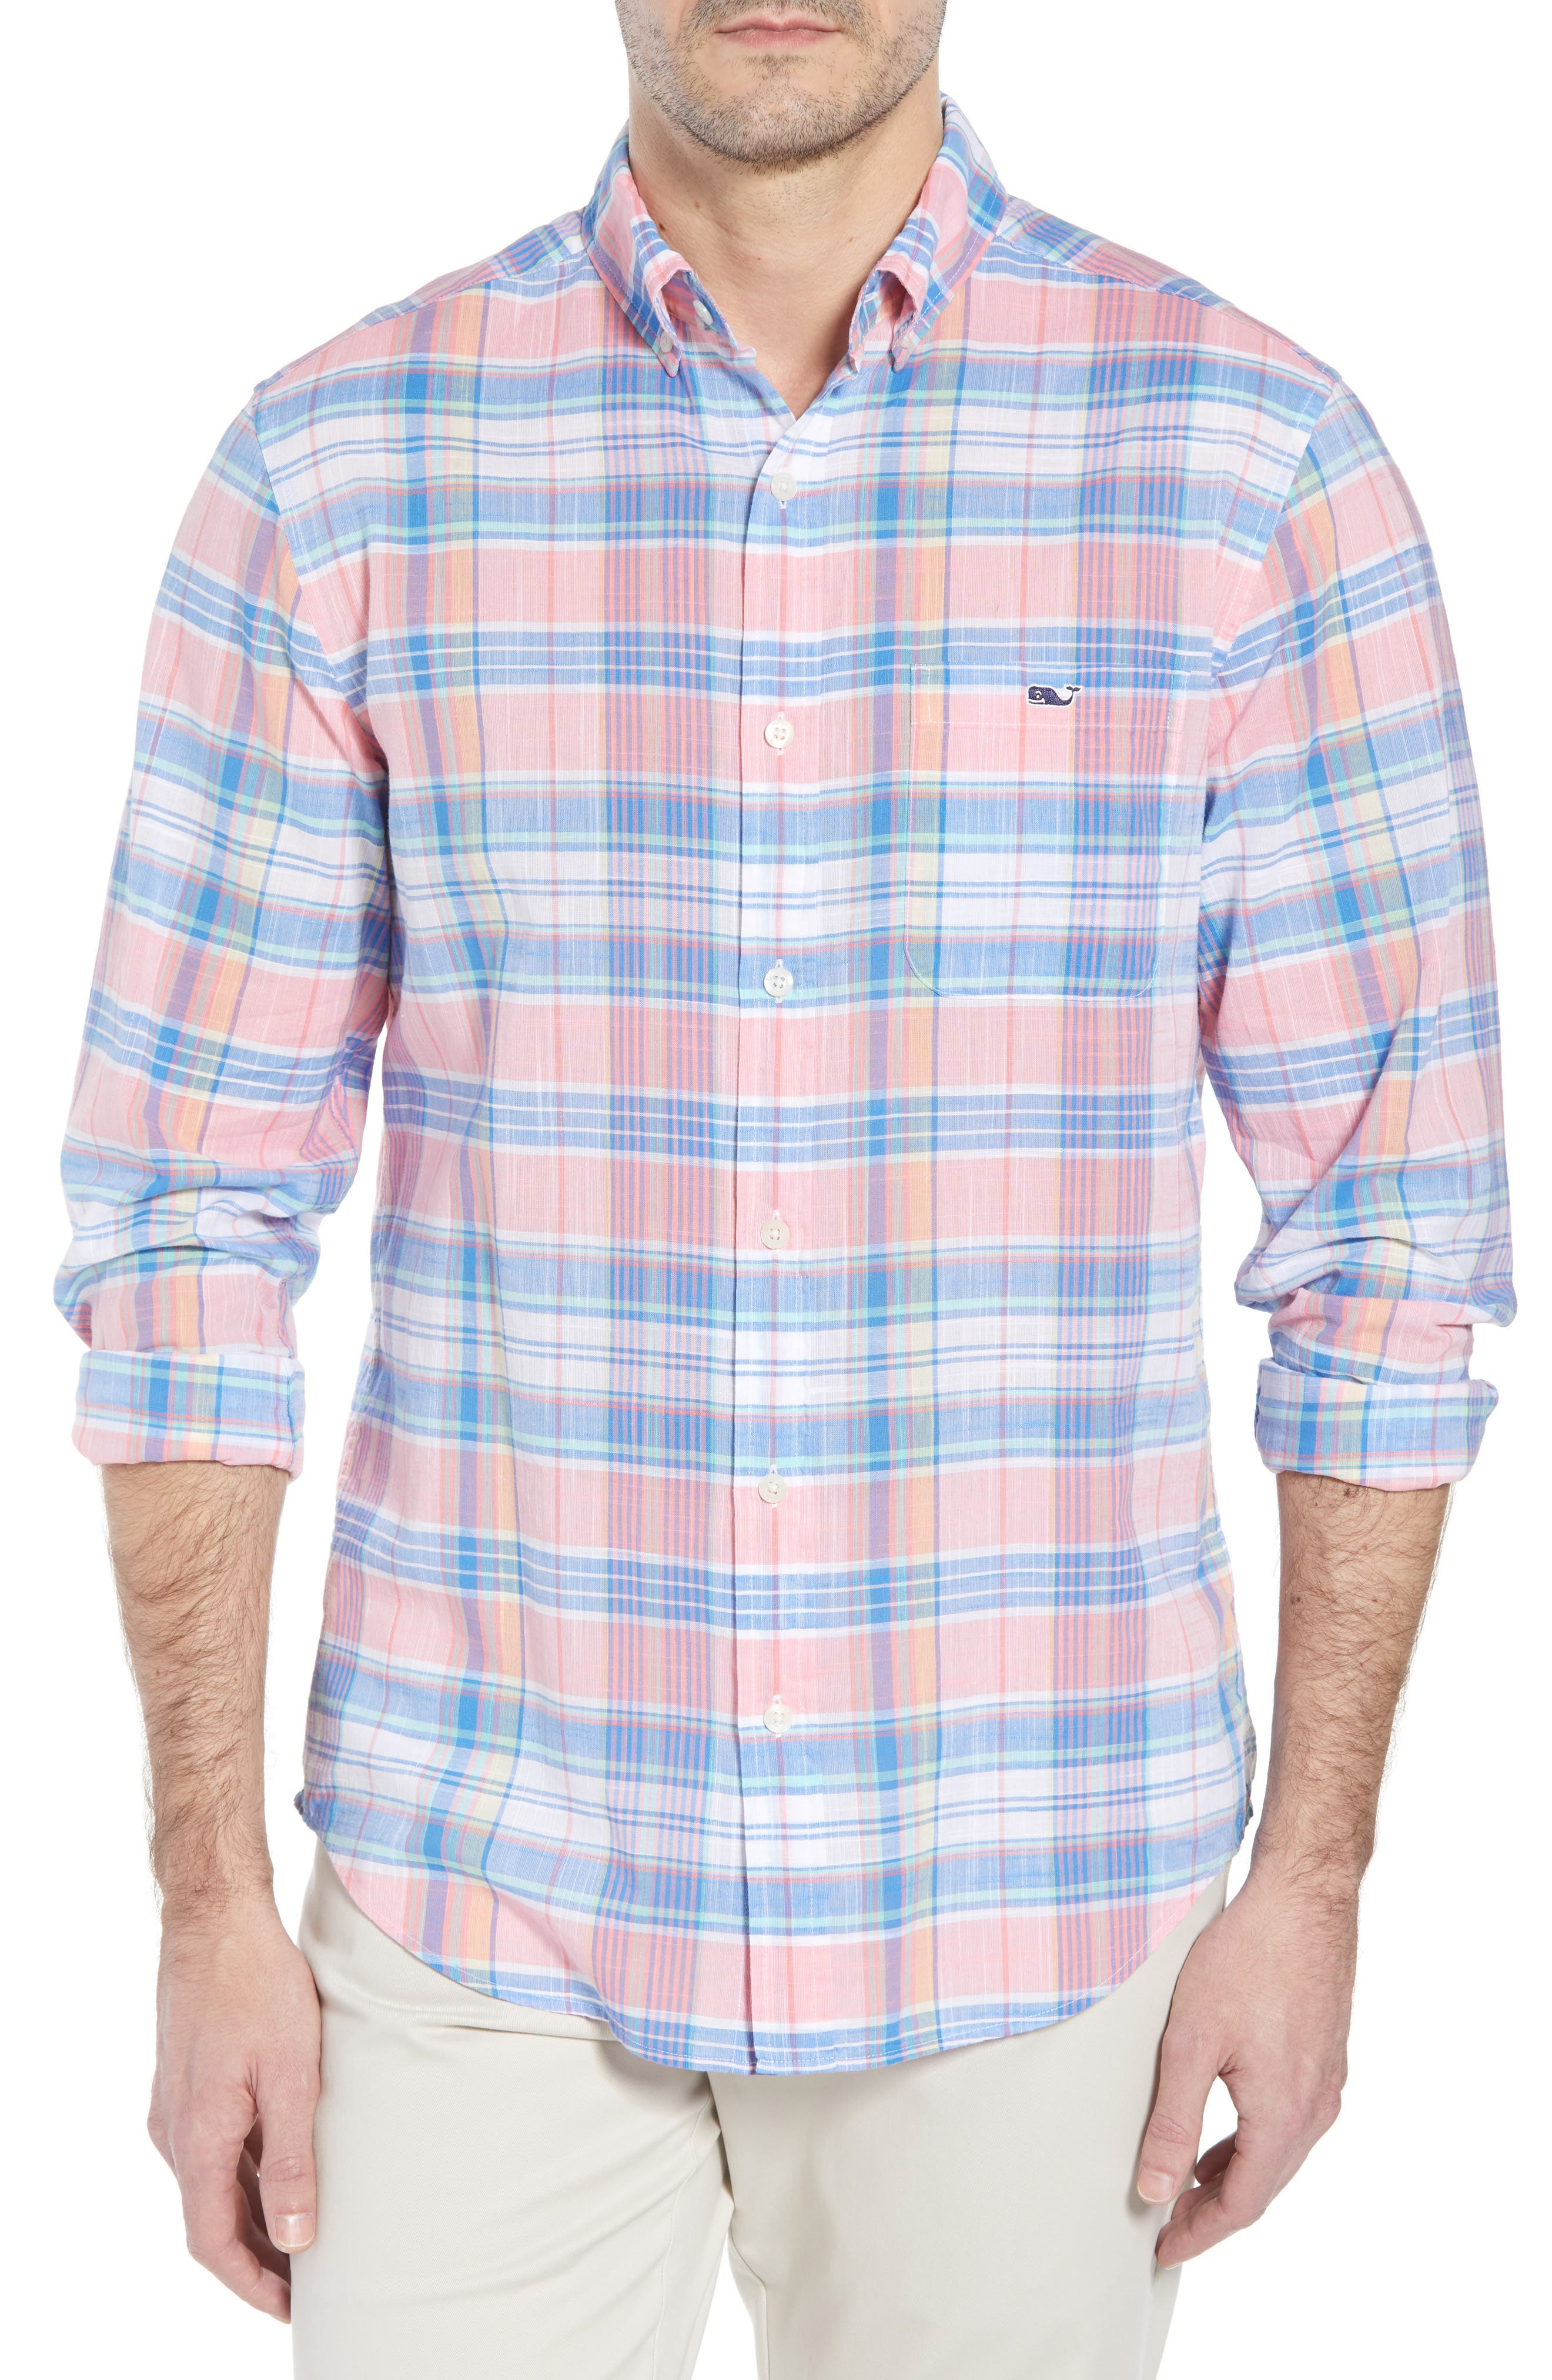 Smith Point Tucker Classic Fit Plaid Sport Shirt,                             Main thumbnail 1, color,                             Washed Neon Pink